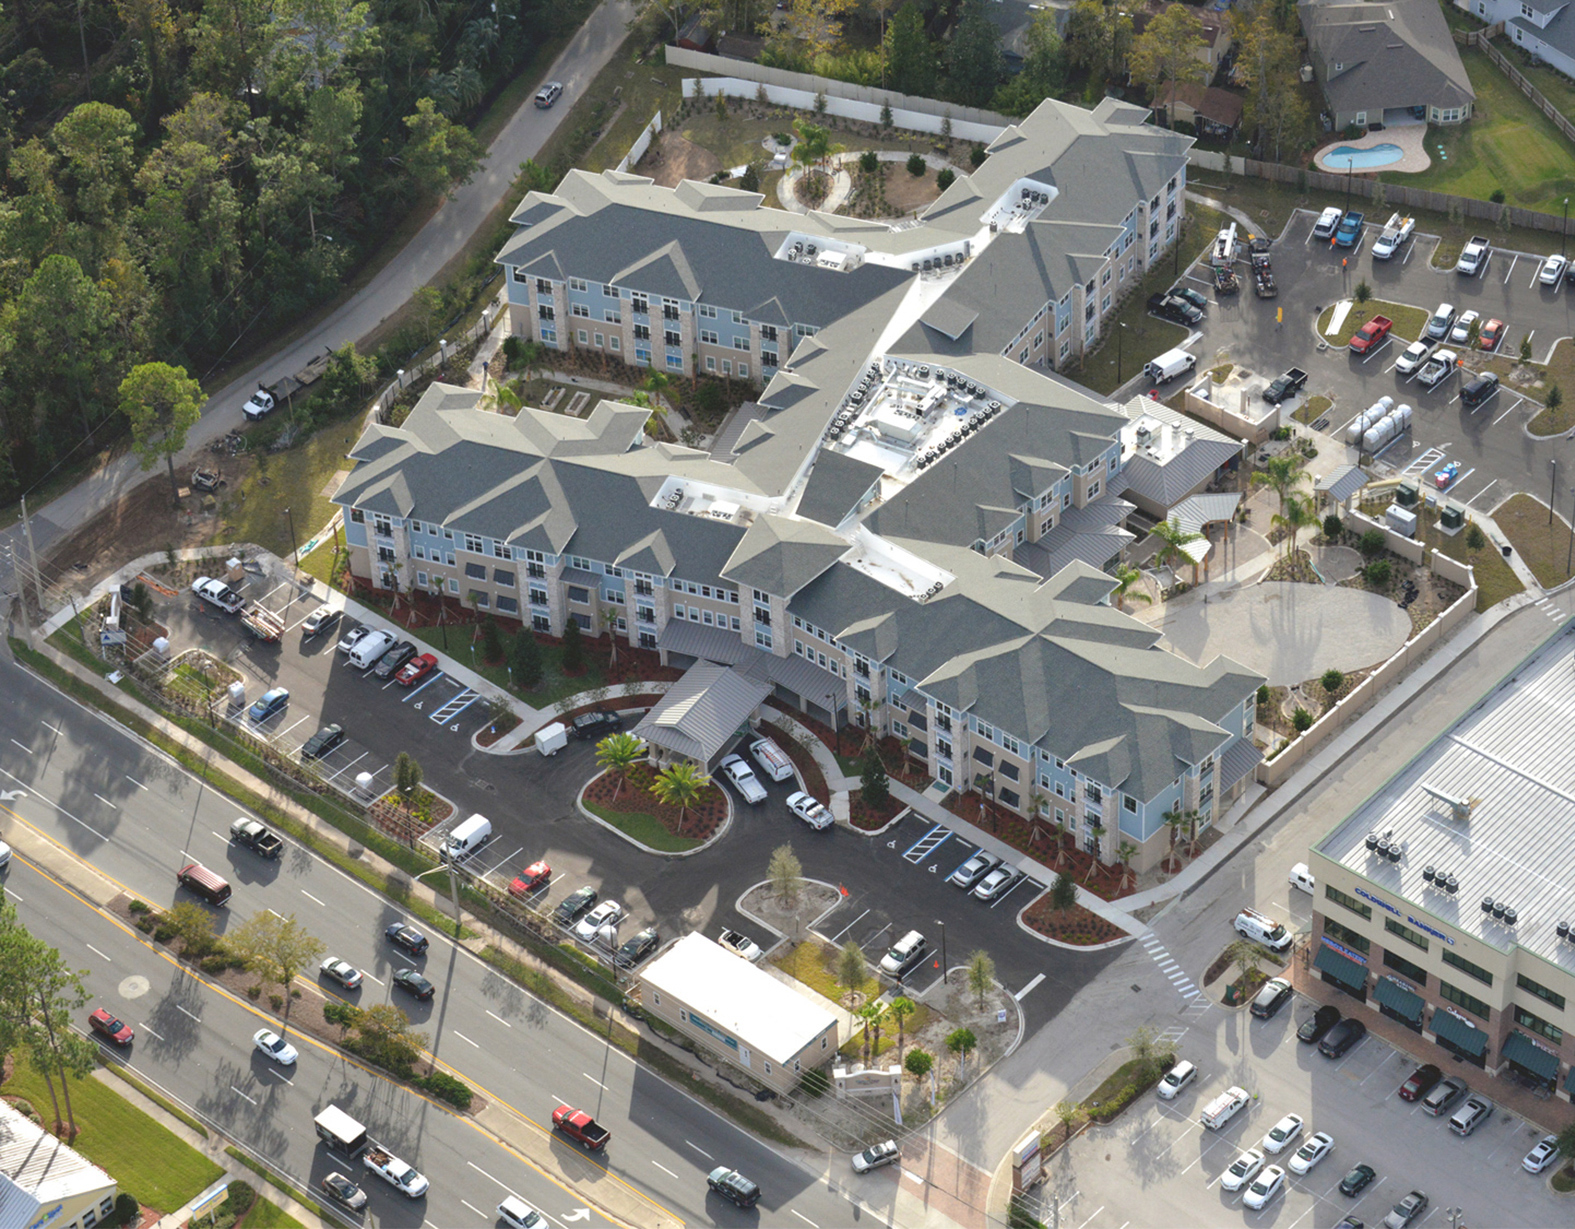 Senior living facility aerial view of complex and parking lot